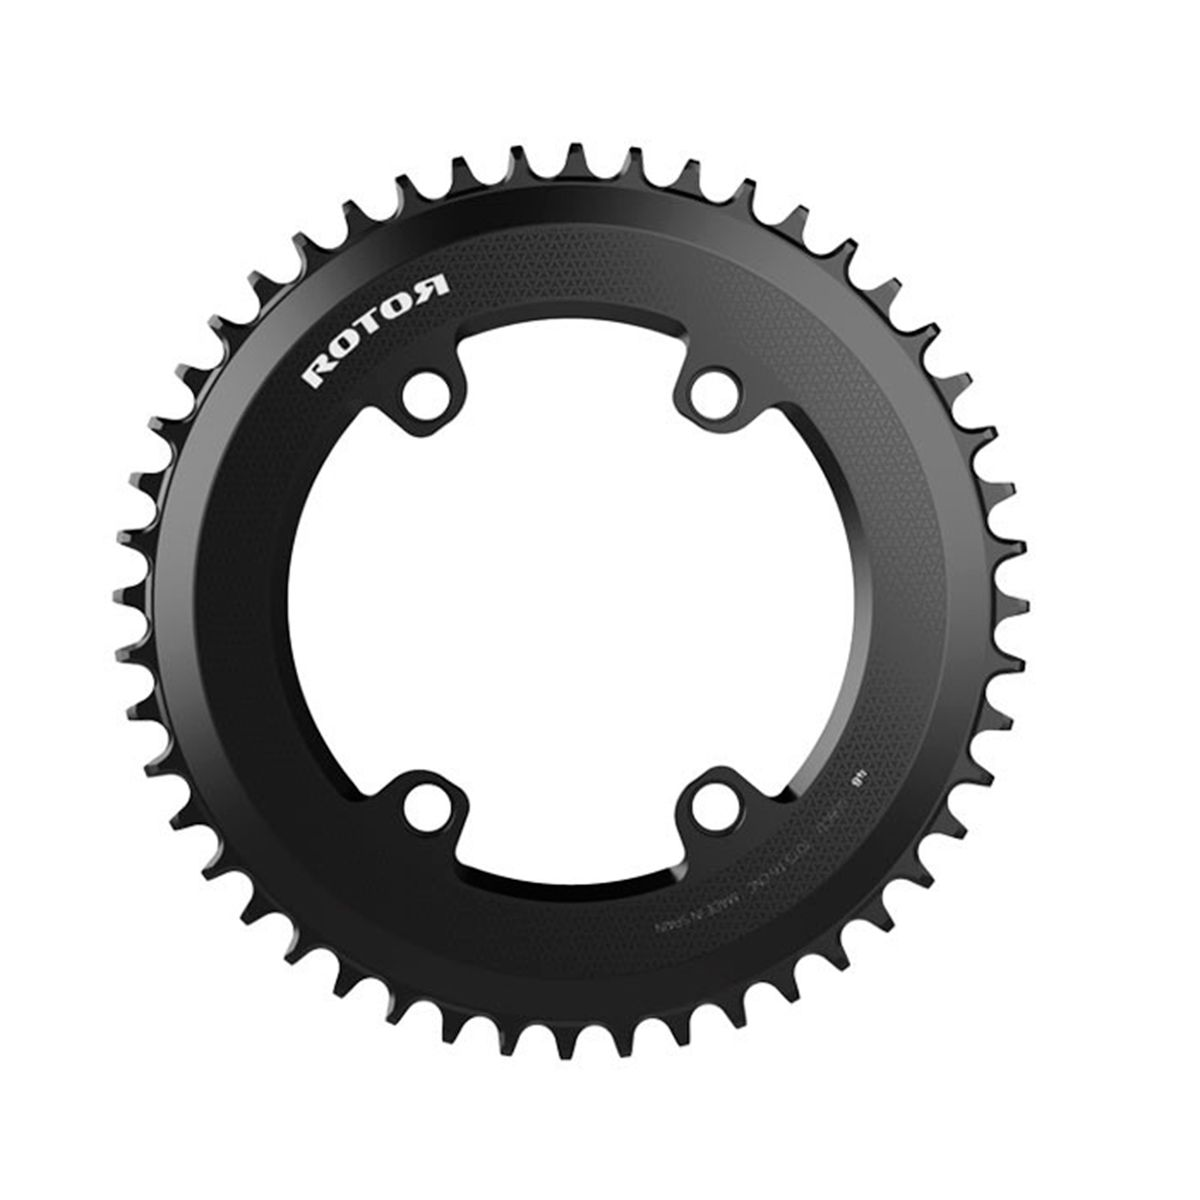 R-Rings Outer, Round Aero Chainring, Double for InSpider Power Meters, ALDHU Spider, SHIMANO – 110x4